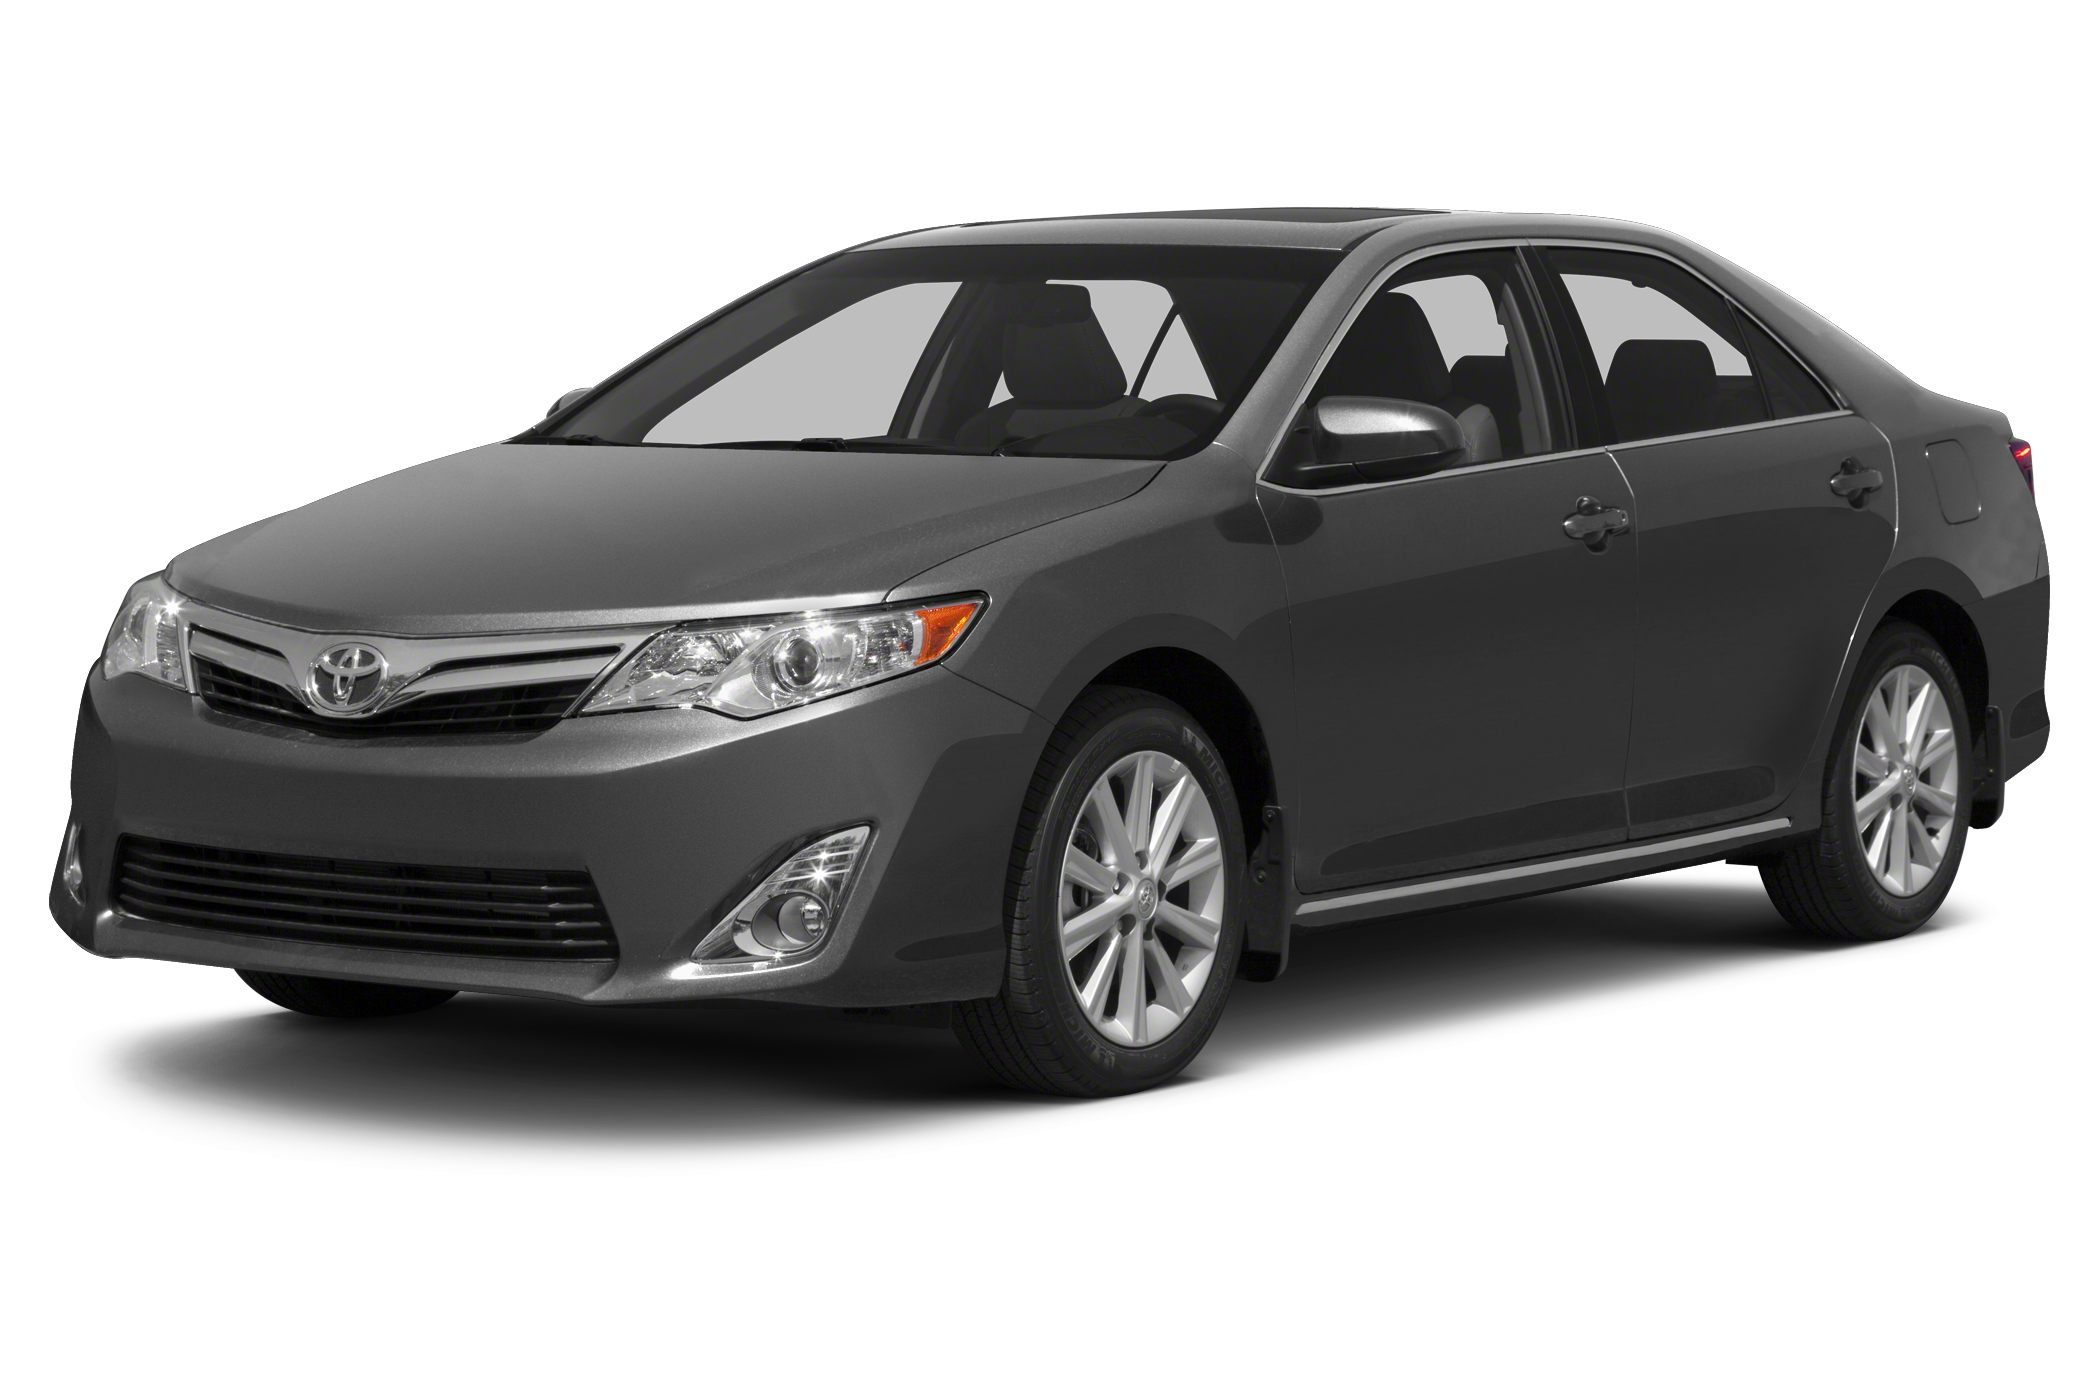 2013 Toyota Camry LE LE trim CLASSIC SILVER METALLIC exterior and BLACKASH 2-TONE interior FUEL